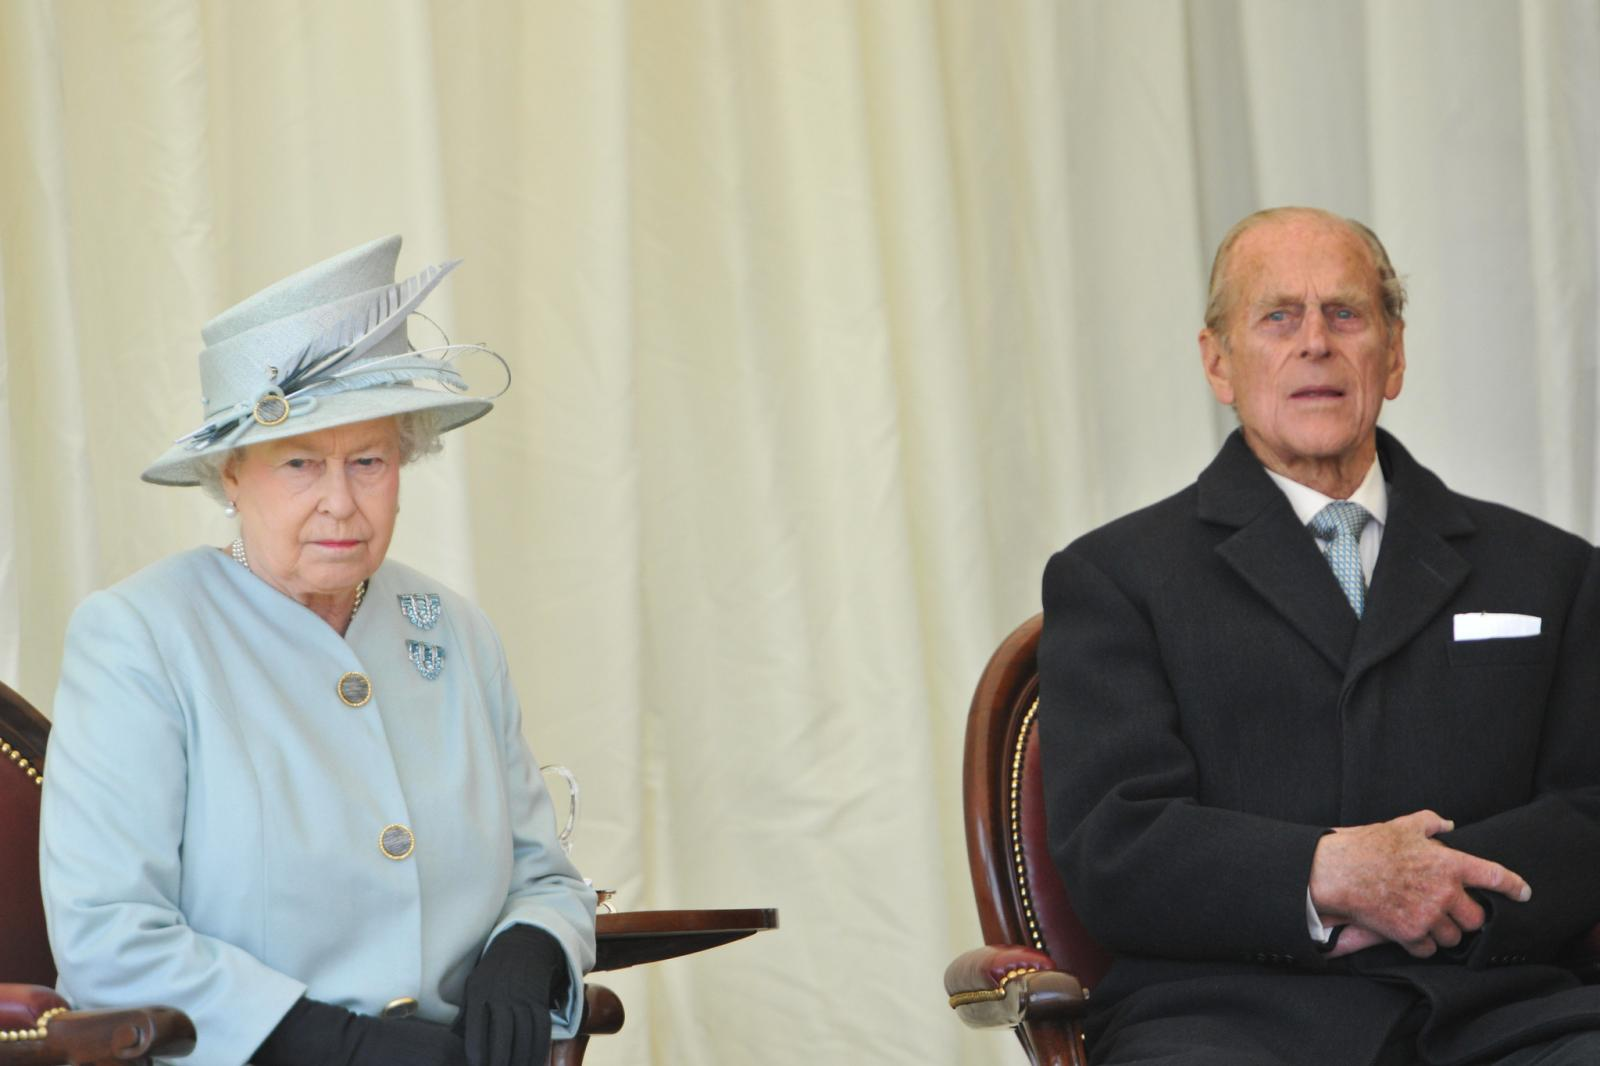 Cardinal prays for the repose of the soul of Prince Philip - Diocese of Westminster